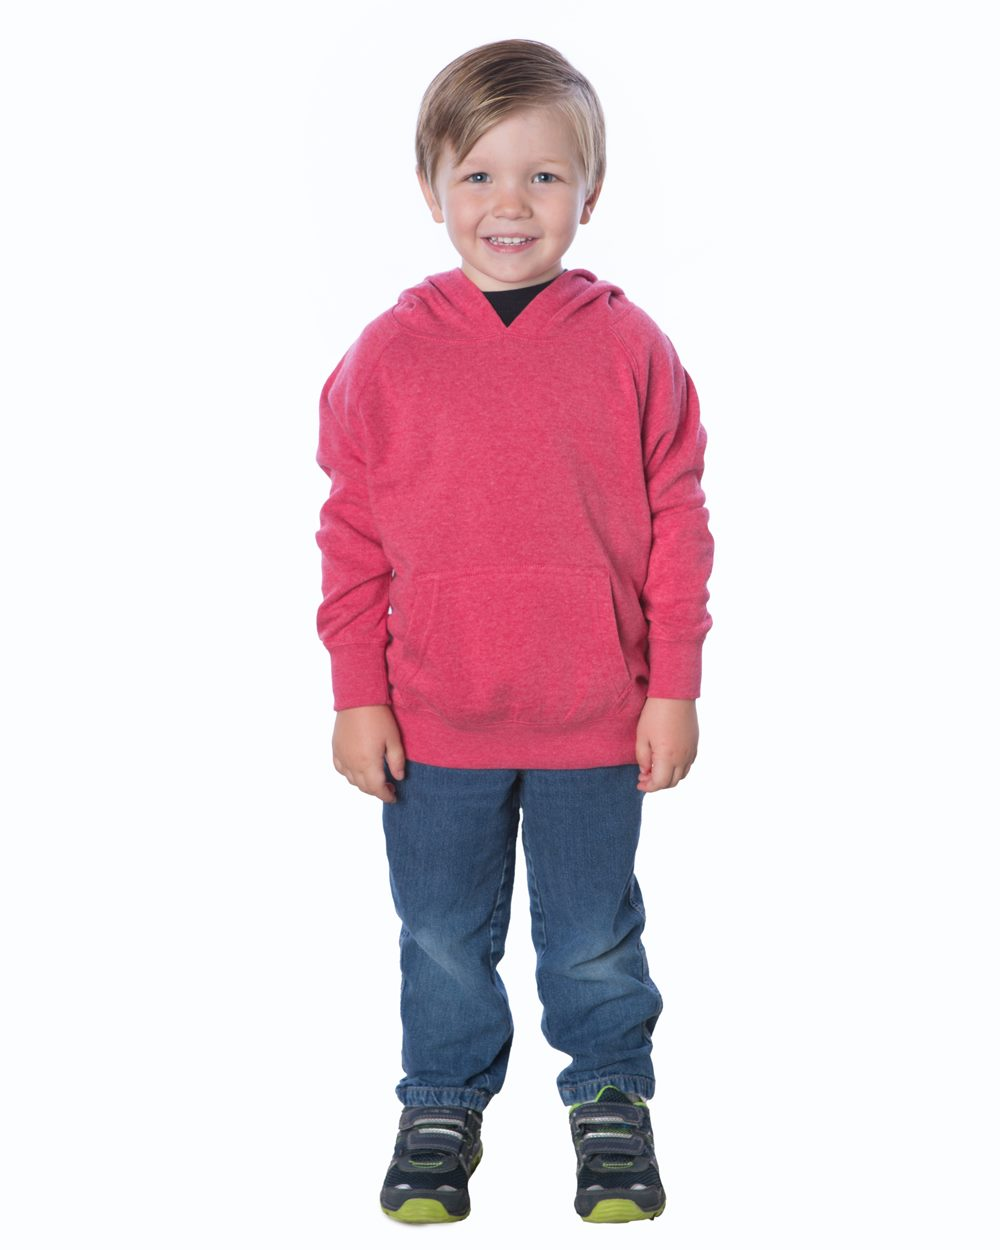 Independent Trading Co. PRM10TSB - Toddler Special Blend Raglan Hooded Pullover Sweatshirt